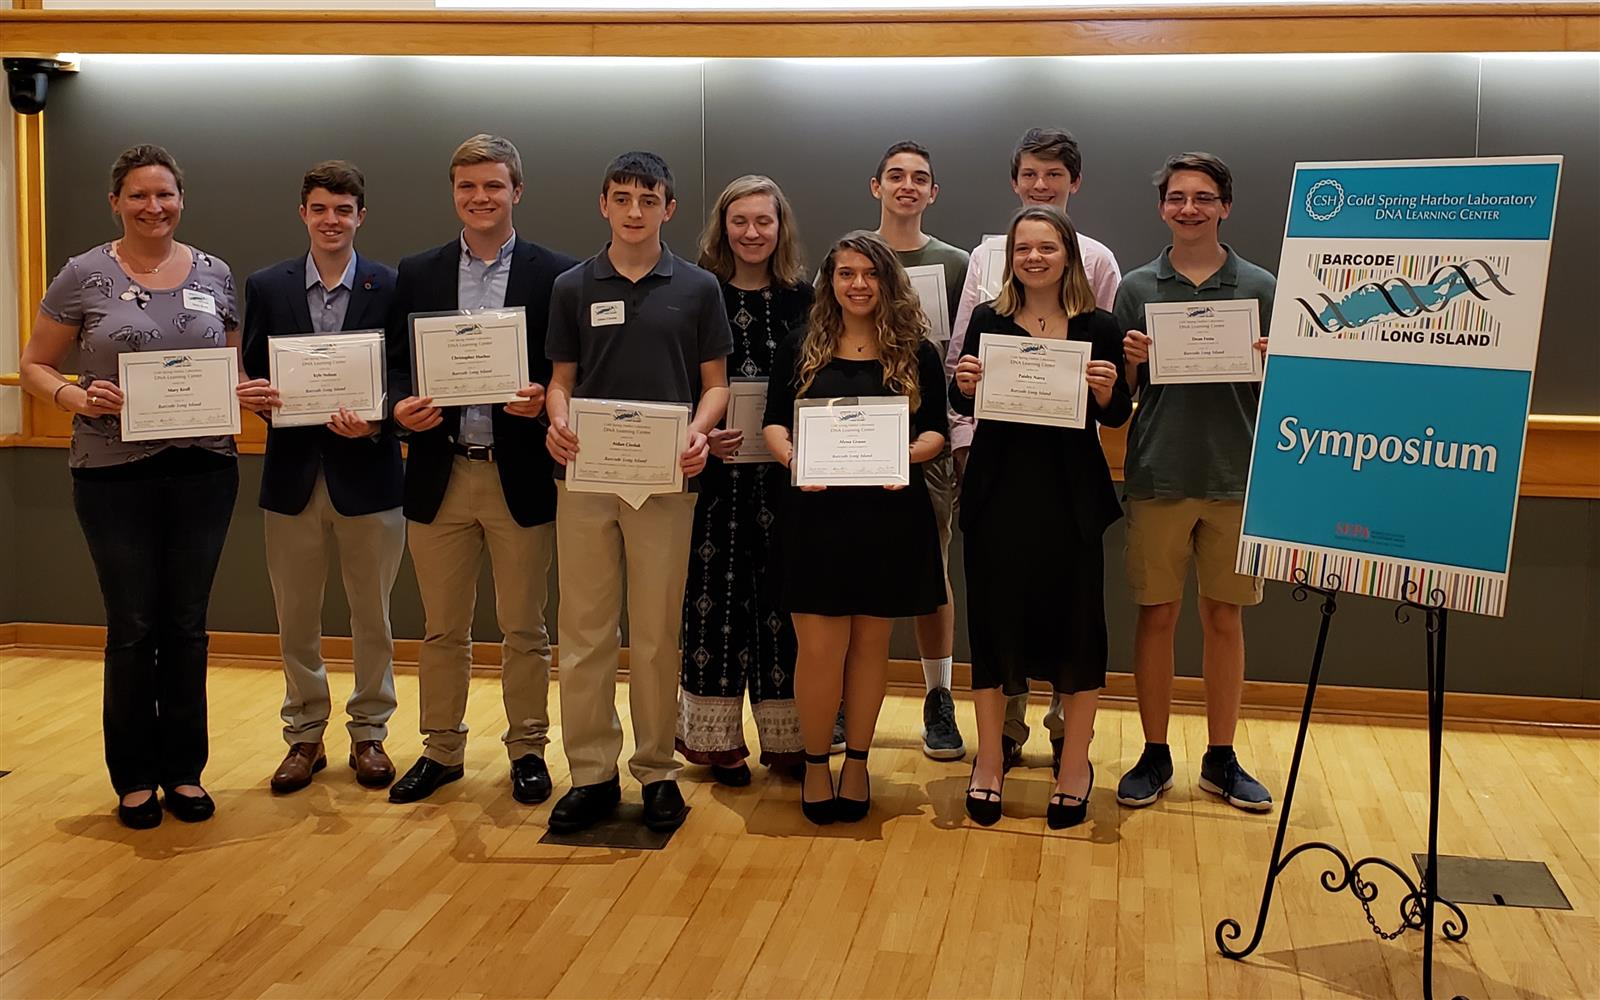 Science Students and Teacher Recognized at Barcode Long Island Symposium